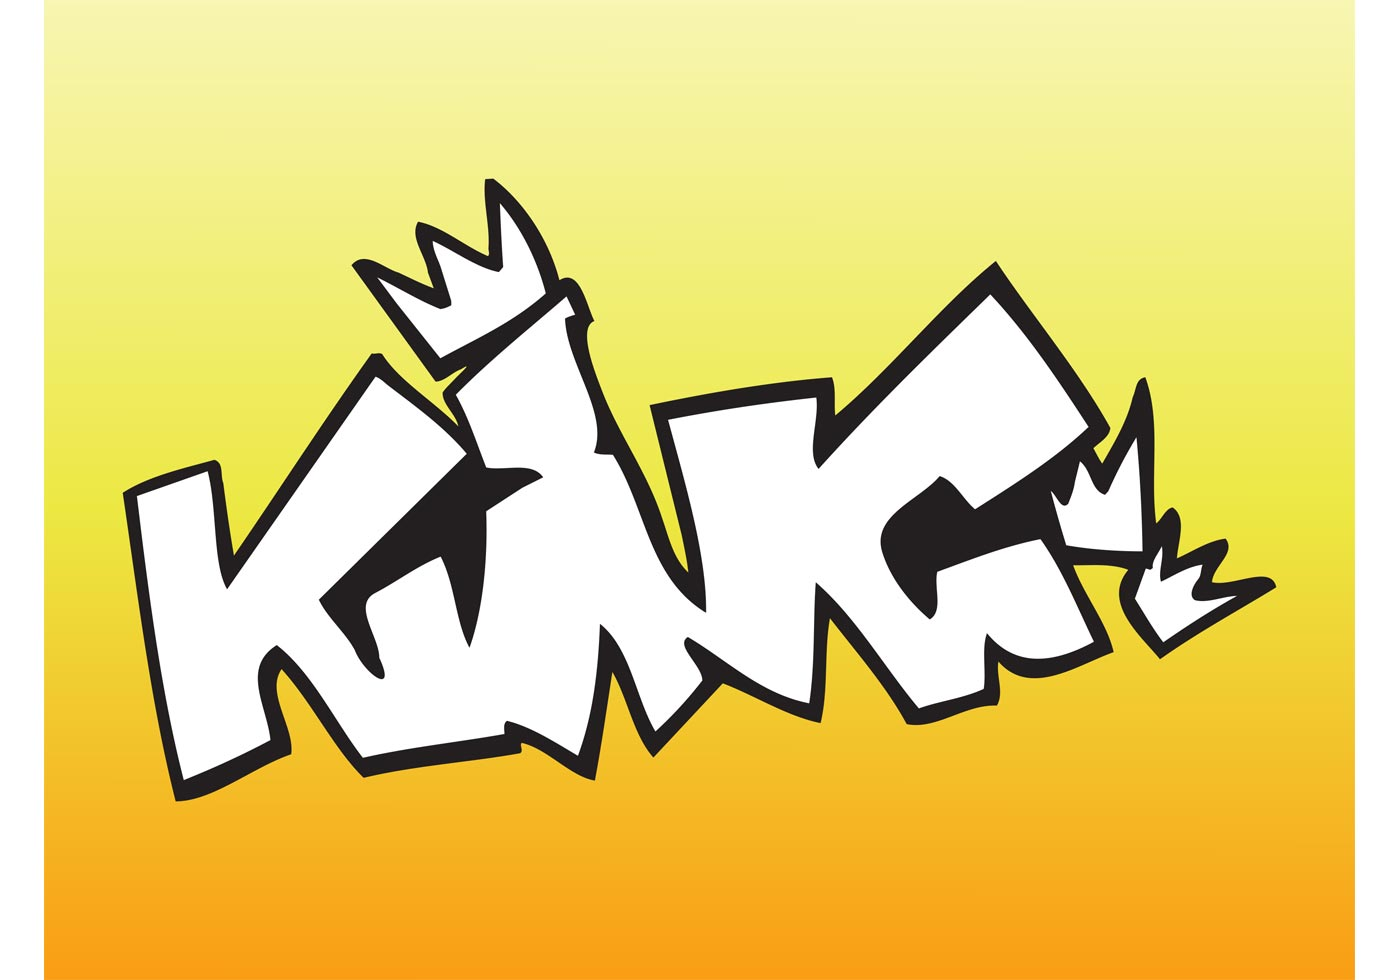 King Graffiti Piece Download Free Vector Art Stock Graphics Images